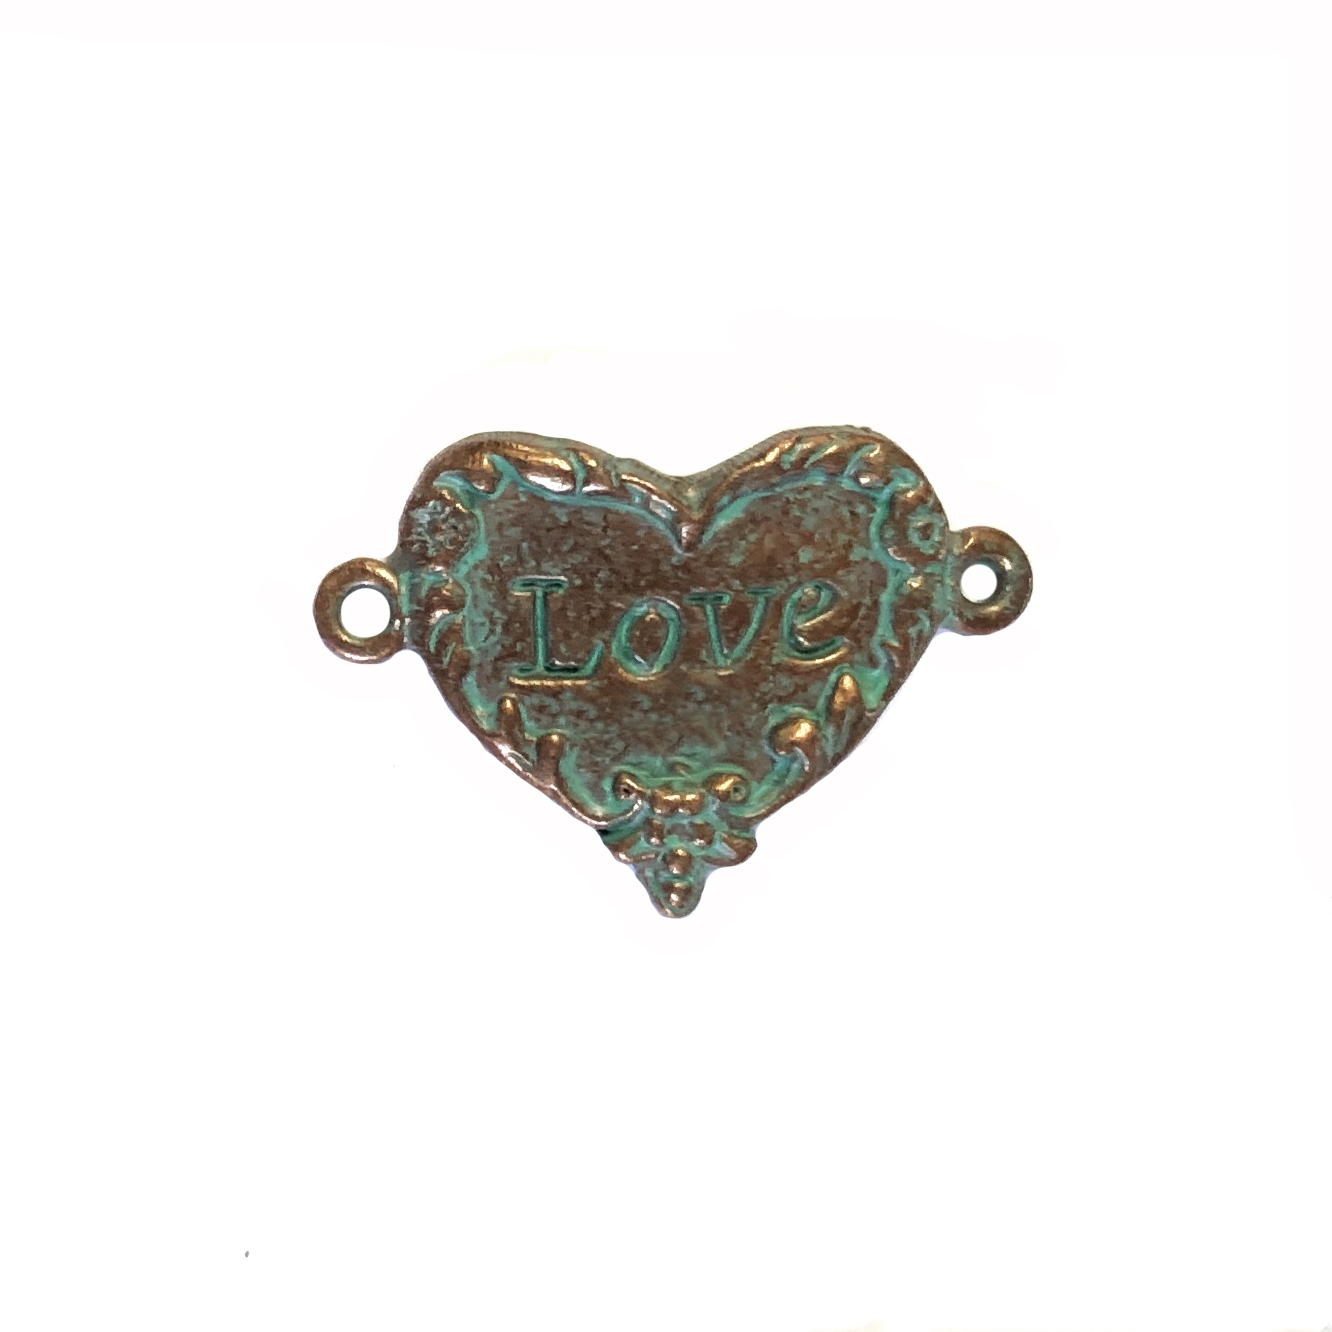 weathered copper pewter, love inscription, love heart, 0363, heart connector, vintage, B'sue by 1928, lead free pewter castings, cast pewter jewelry findings, made in the USA, floral border,  heart charm, 1928 Company, B'sue Boutiques